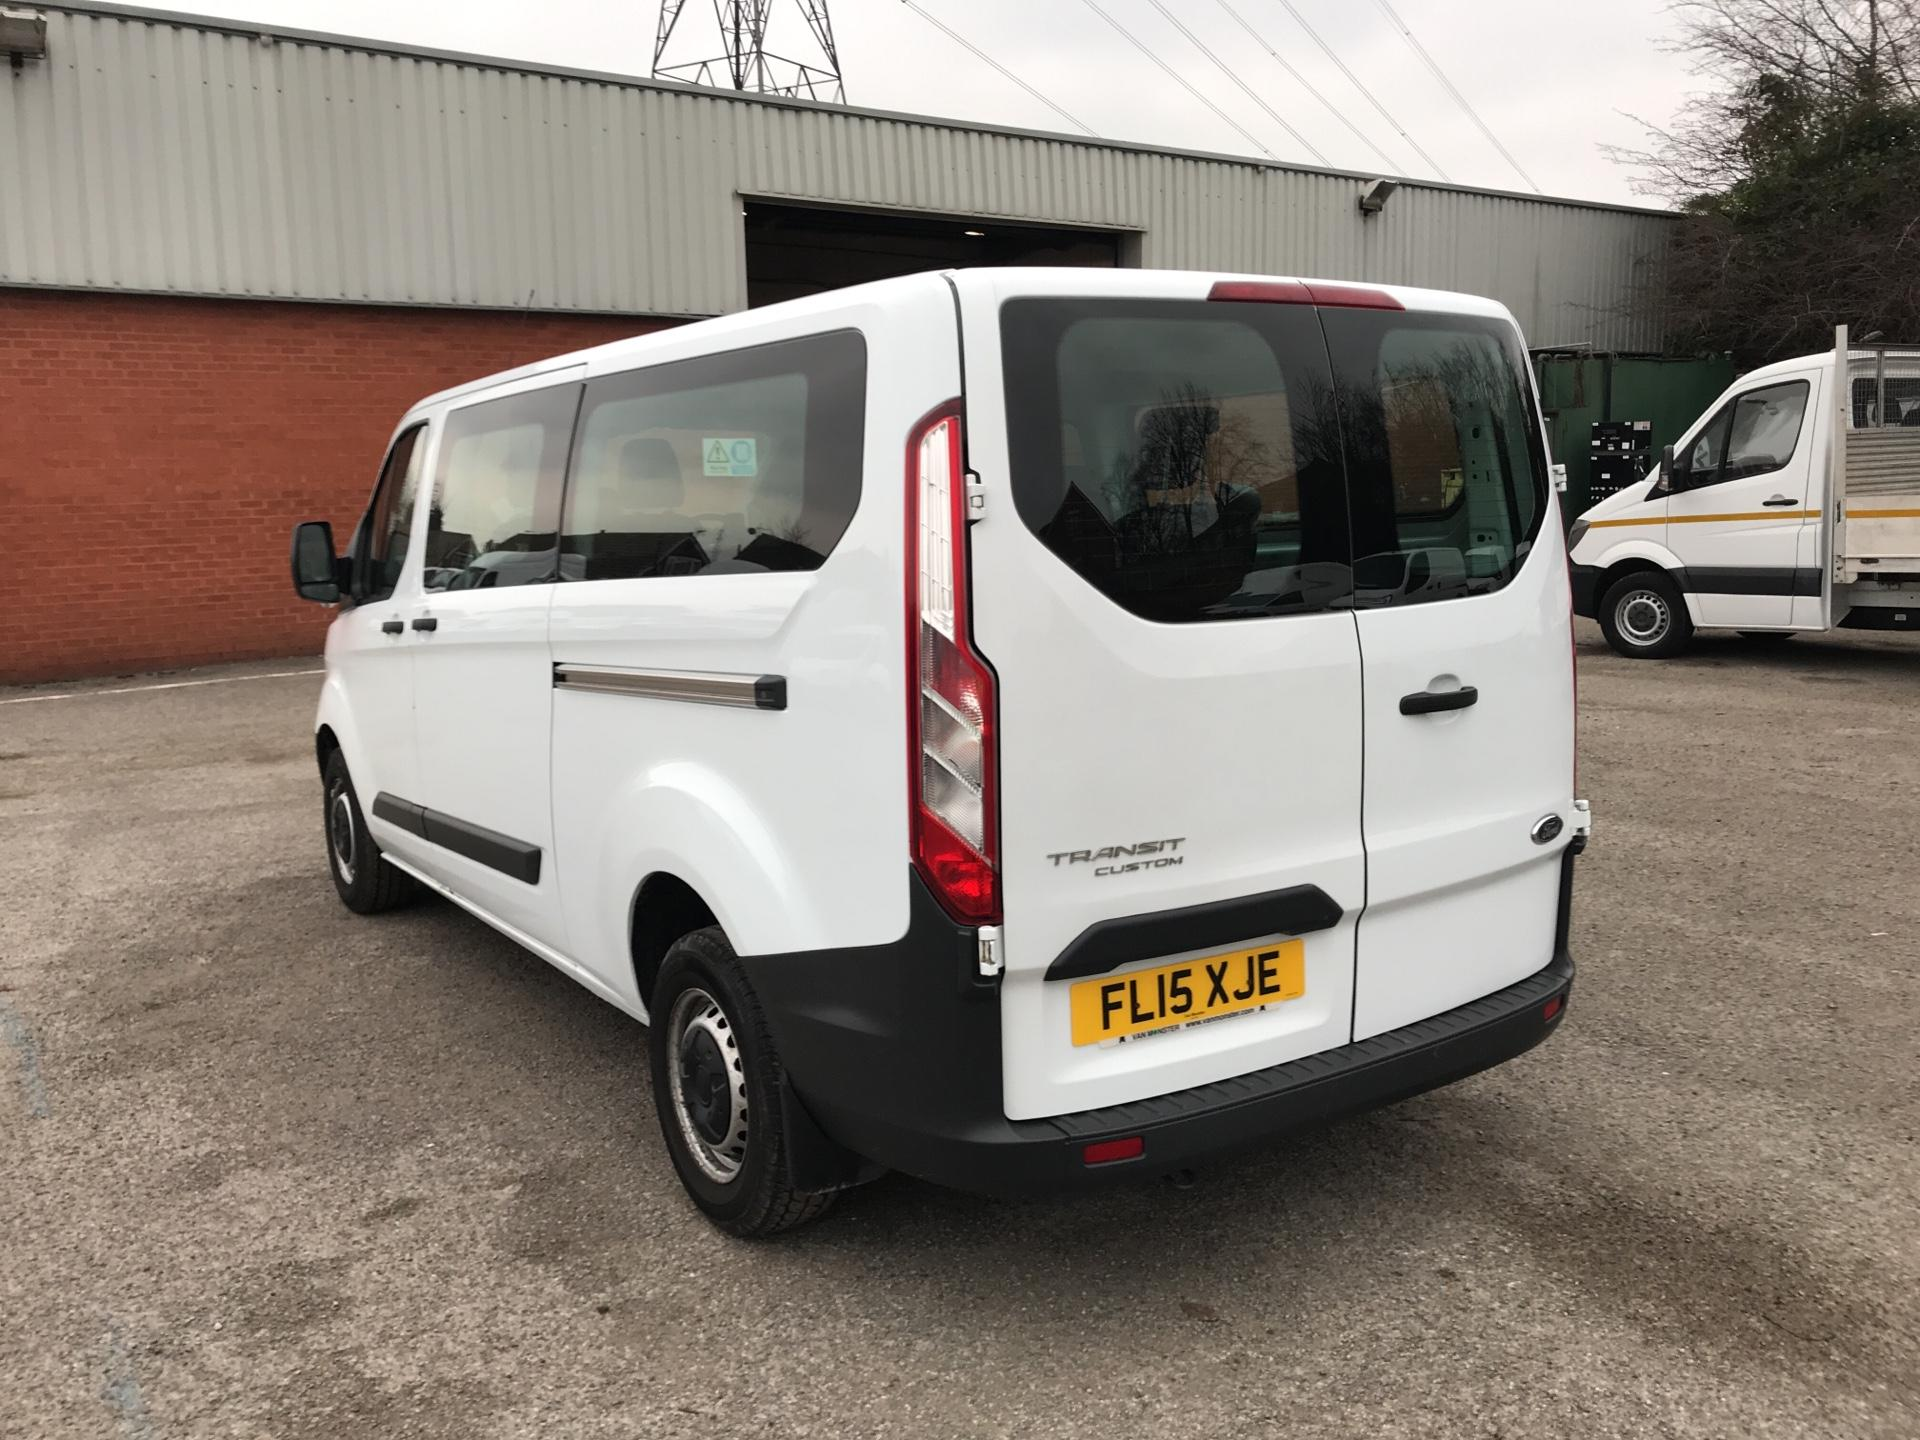 2015 Ford Transit Custom 2.2 Tdci 125Ps Low Roof Kombi Van euro 5 - VALUE RANGE - CONDITION REFLECTED IN PRICE  (FL15XJE) Image 5